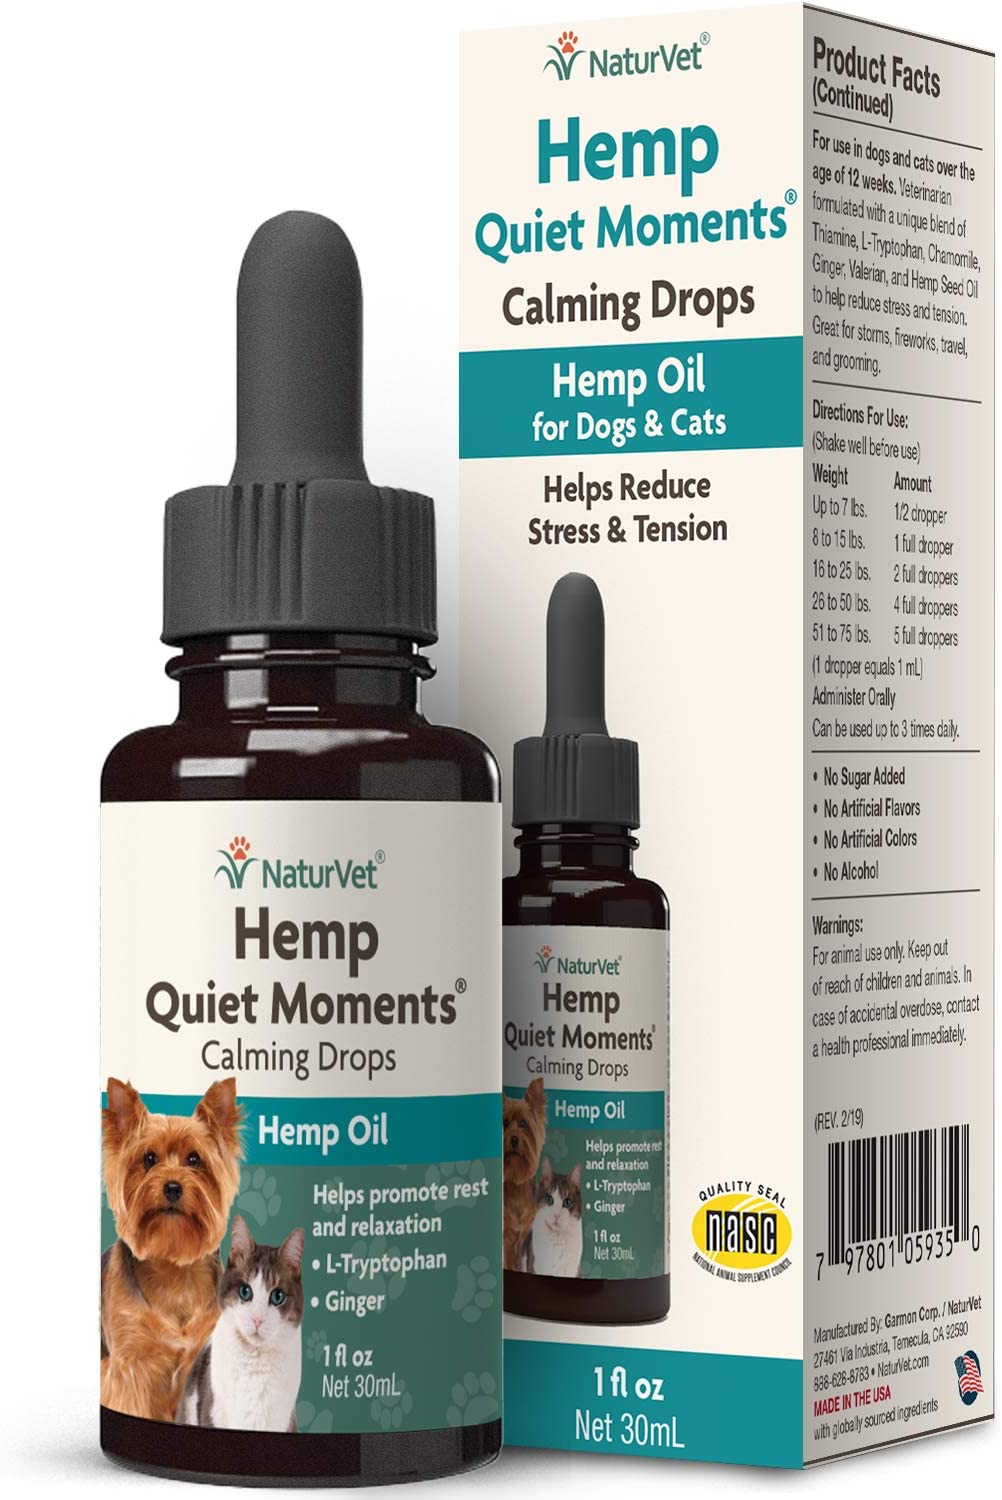 NaturVet – Hemp Quiet Moments Calming Drops - 1 oz – Enhanced With Hemp Seed Oil, L-Tryptophan & Ginger – Helps Reduce Stress & Promote Relaxation – For Dogs & Cats